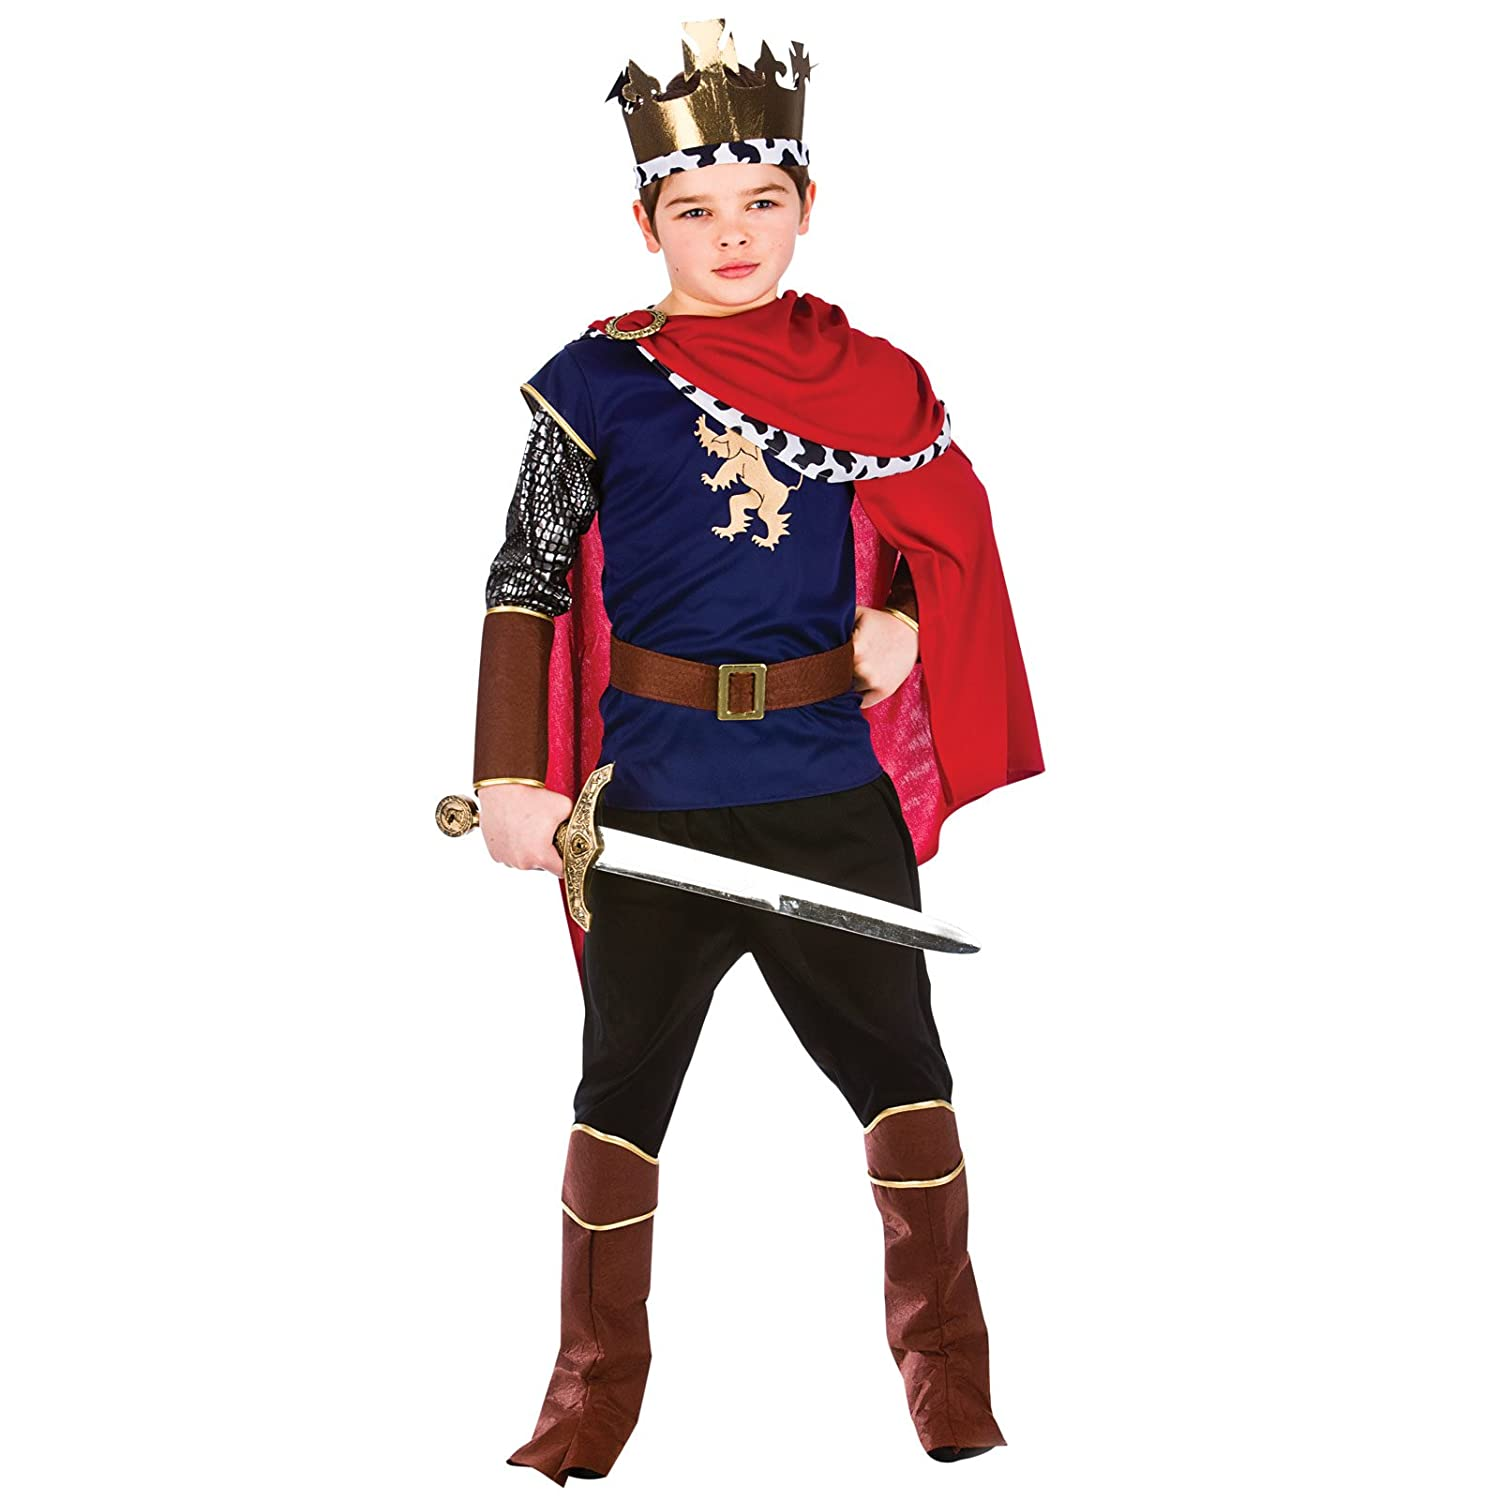 Kings dress images